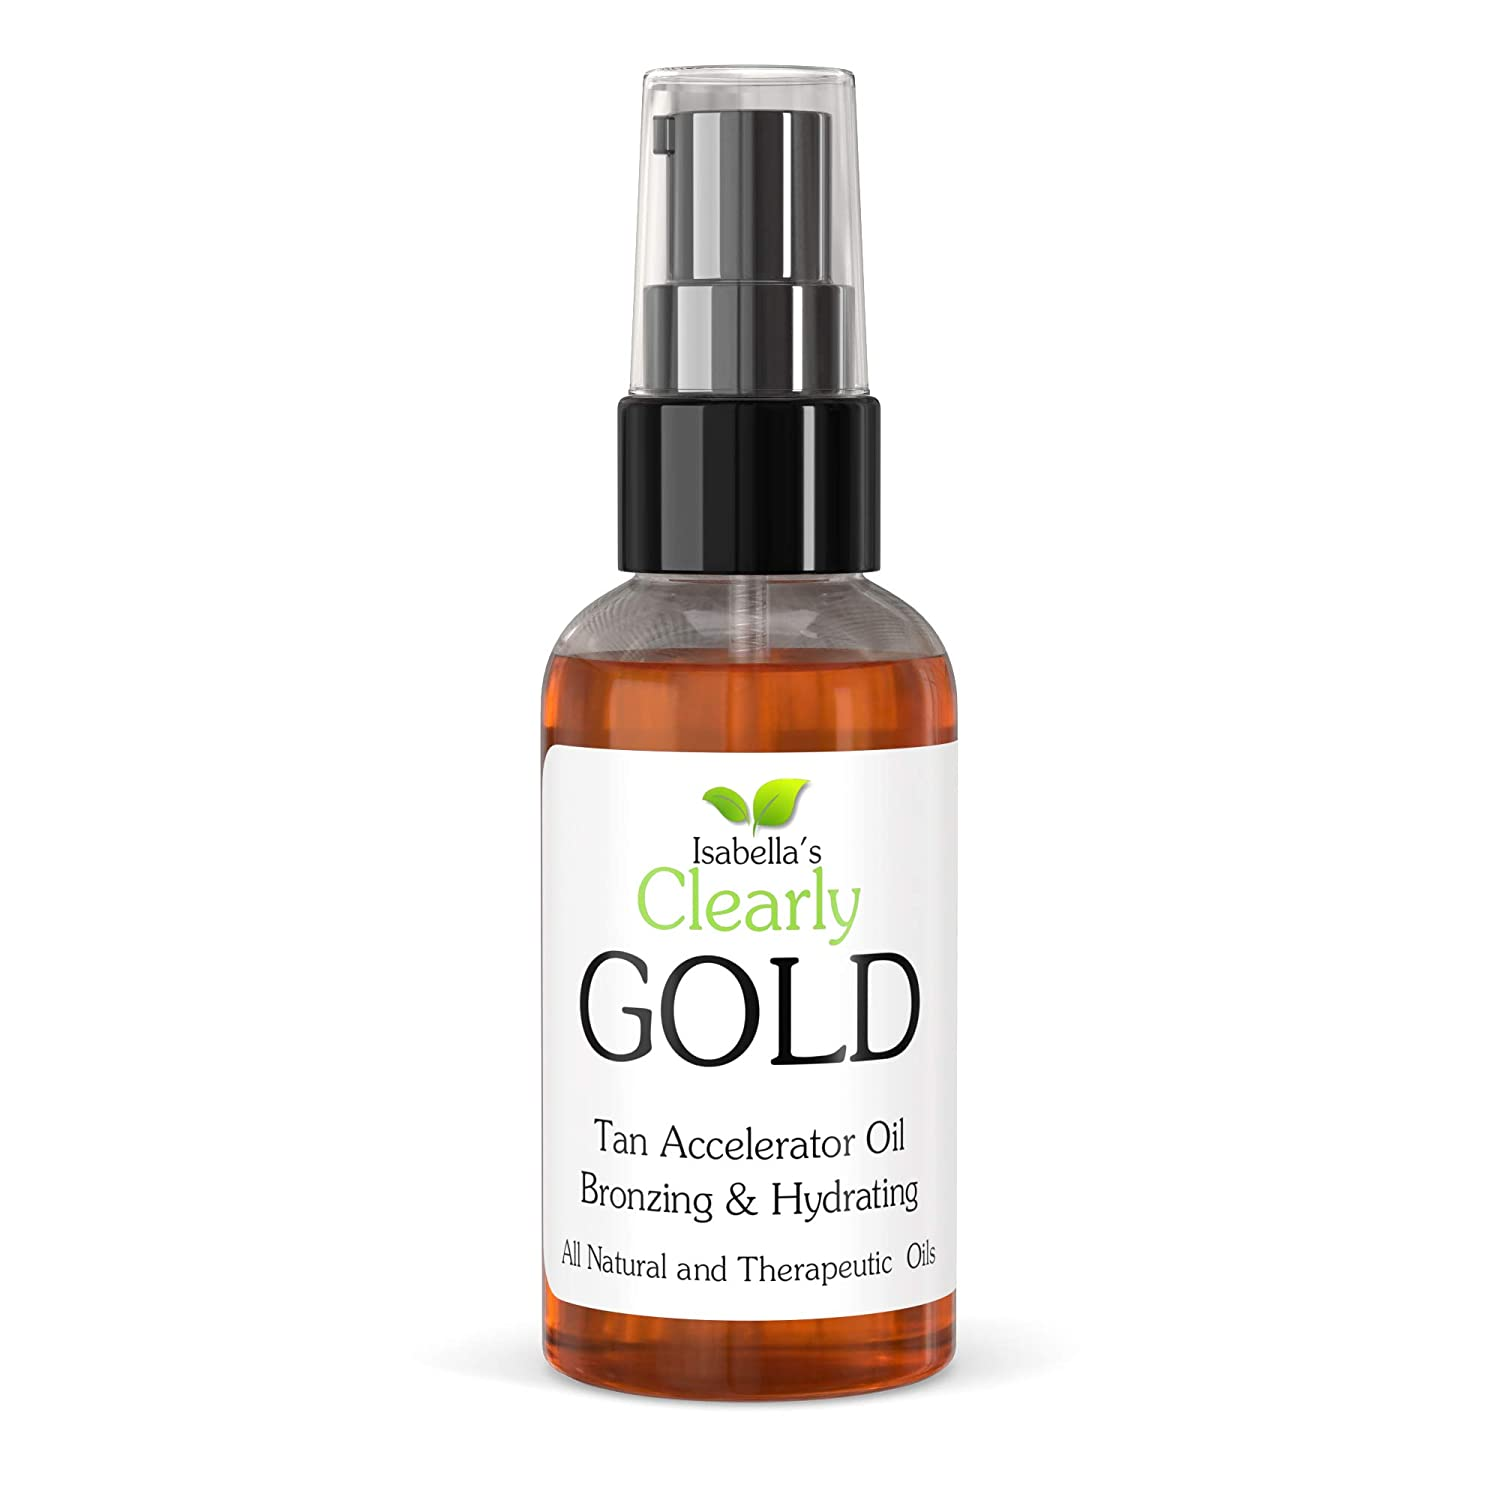 Isabella's Clearly GOLD, Best Natural Bronzing Tanning Oil. Moisturizing & Hydrating Sun Tan Accelerator, Healthy Bronze Glow with Olive, Carrot Seed, and Coconut Oils. 2 Oz